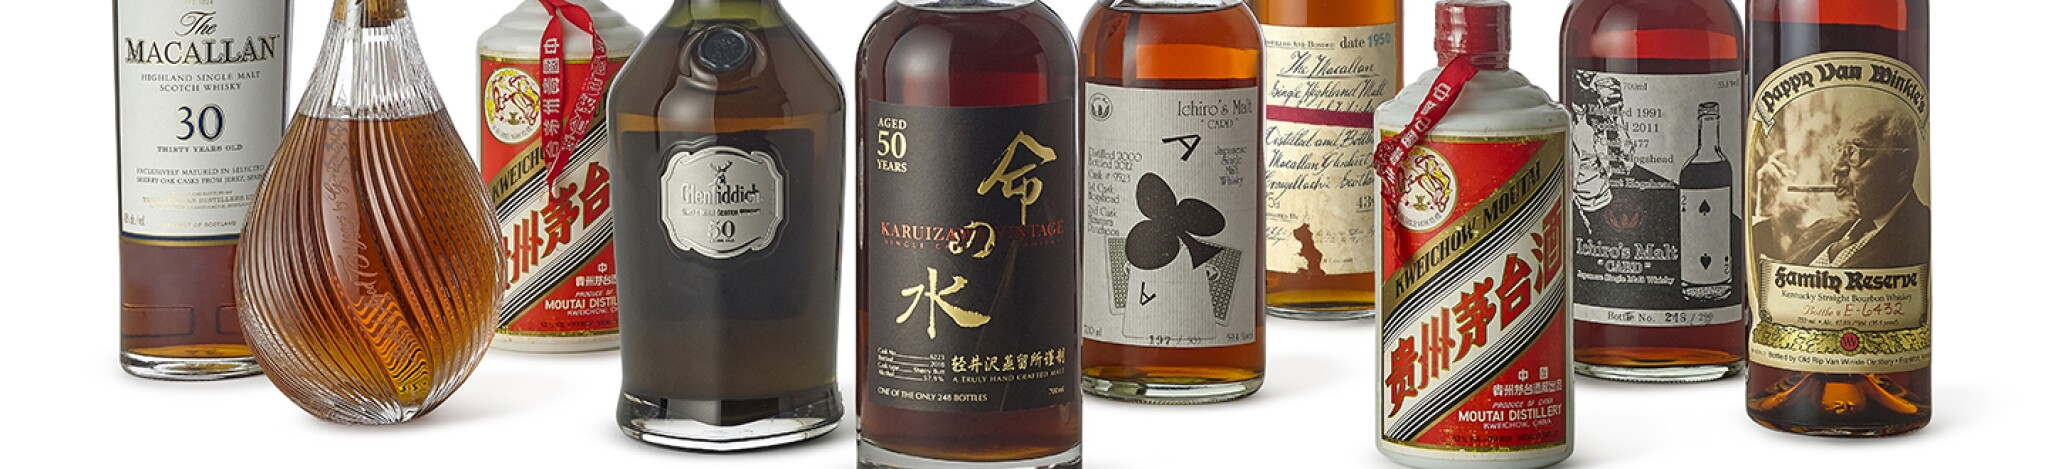 Distilled | Whisky + Moutai + More